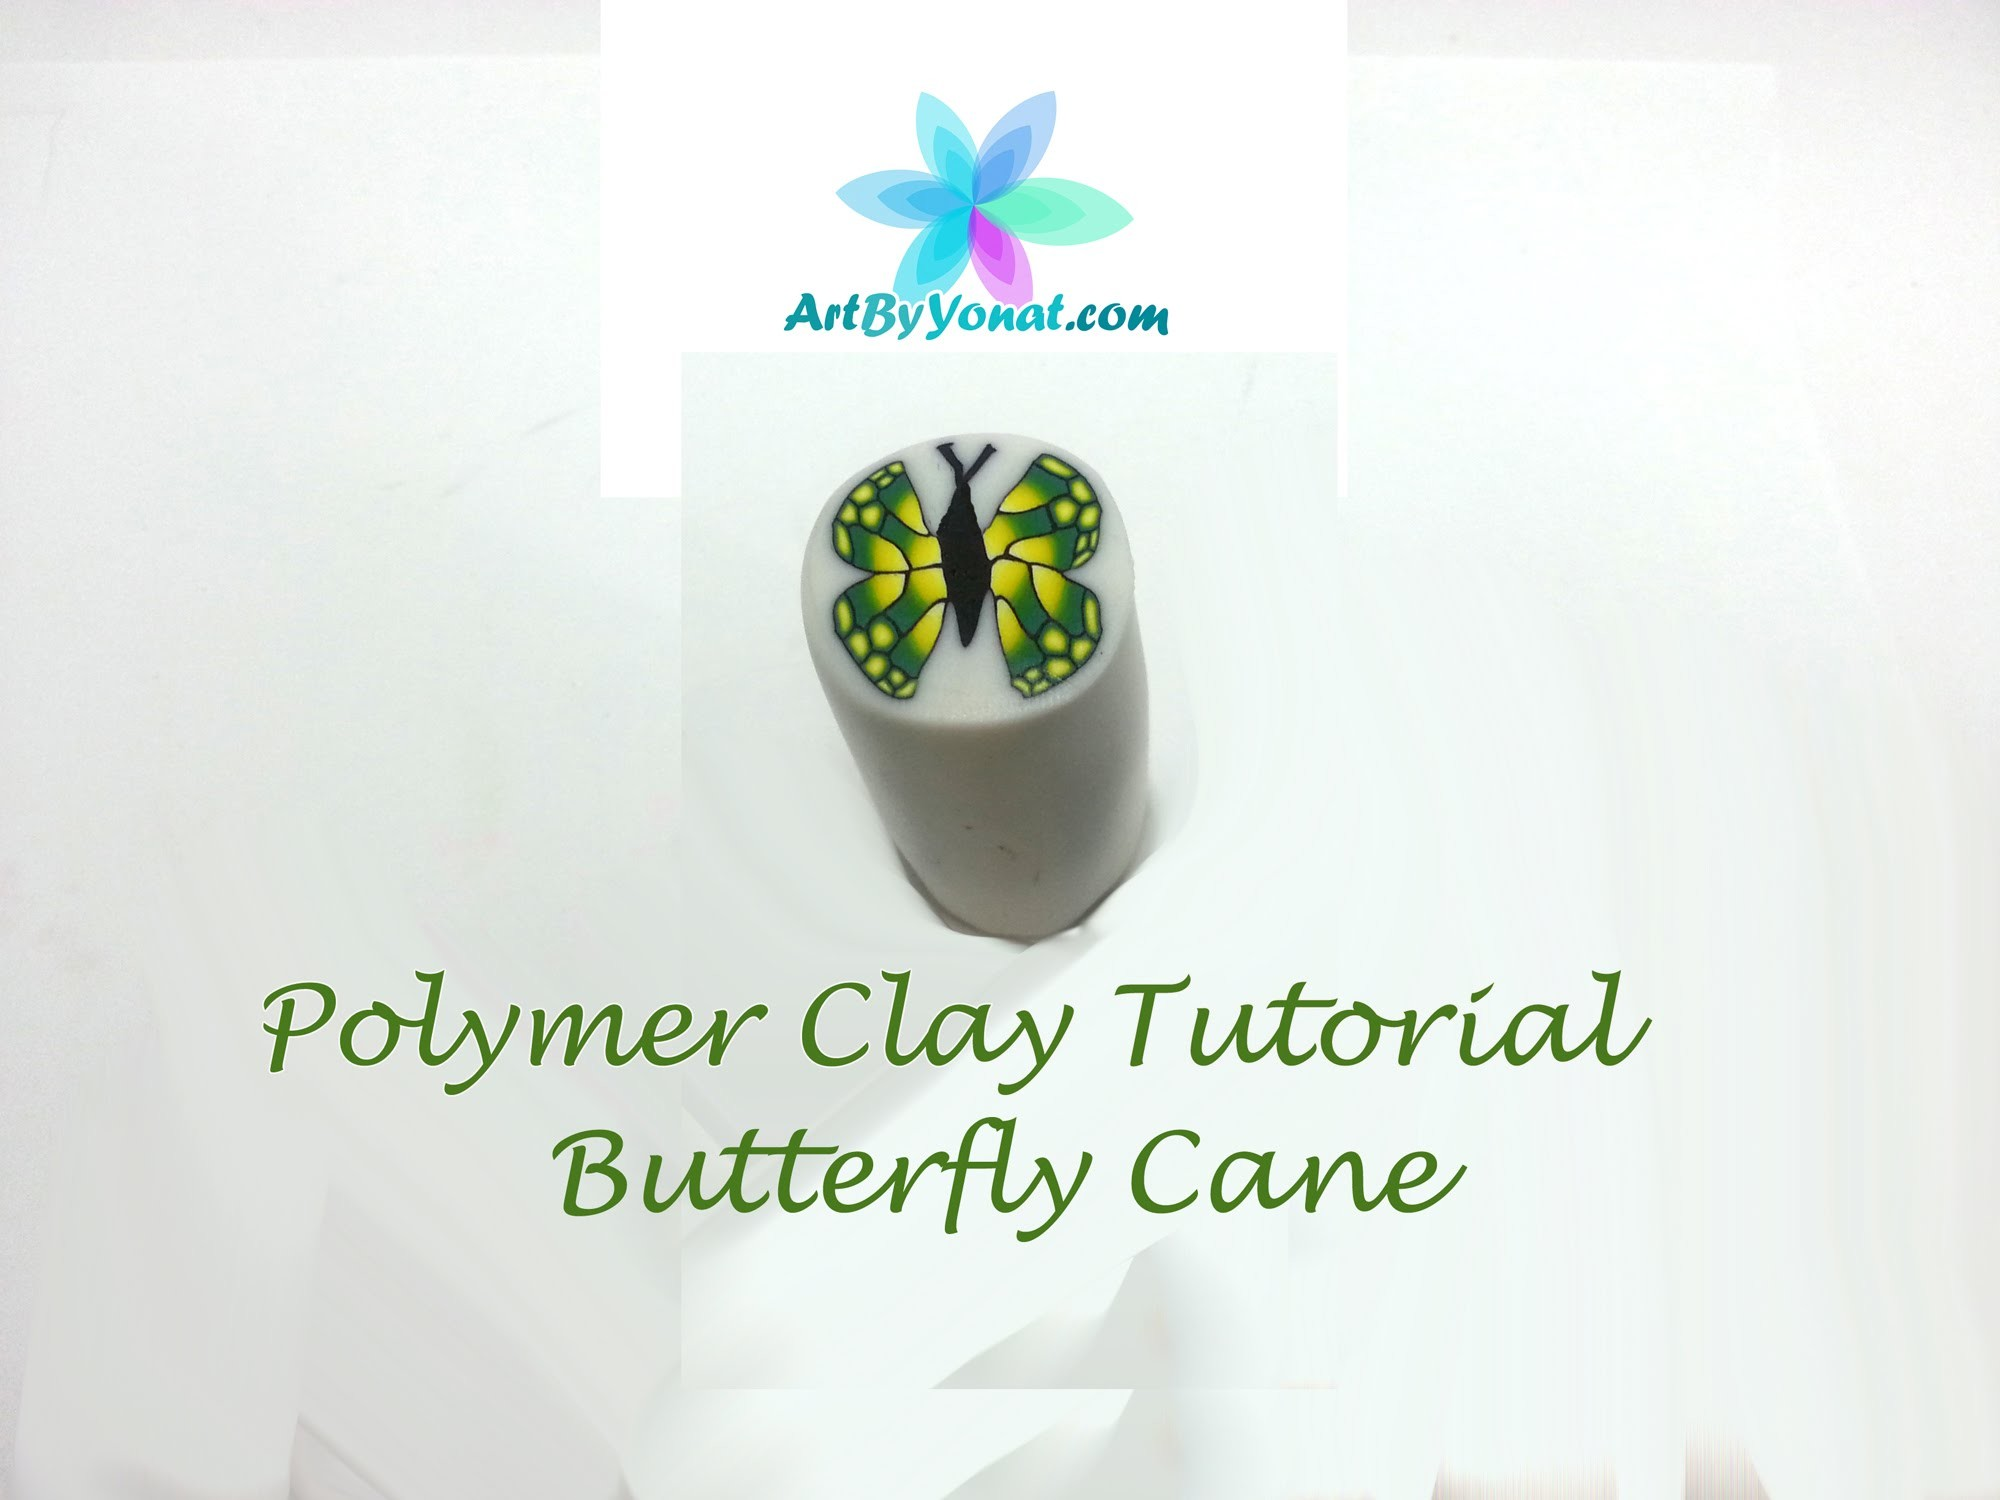 Polymer Clay Tutorial - How to Make a Butterfly Cane - Lesson #15